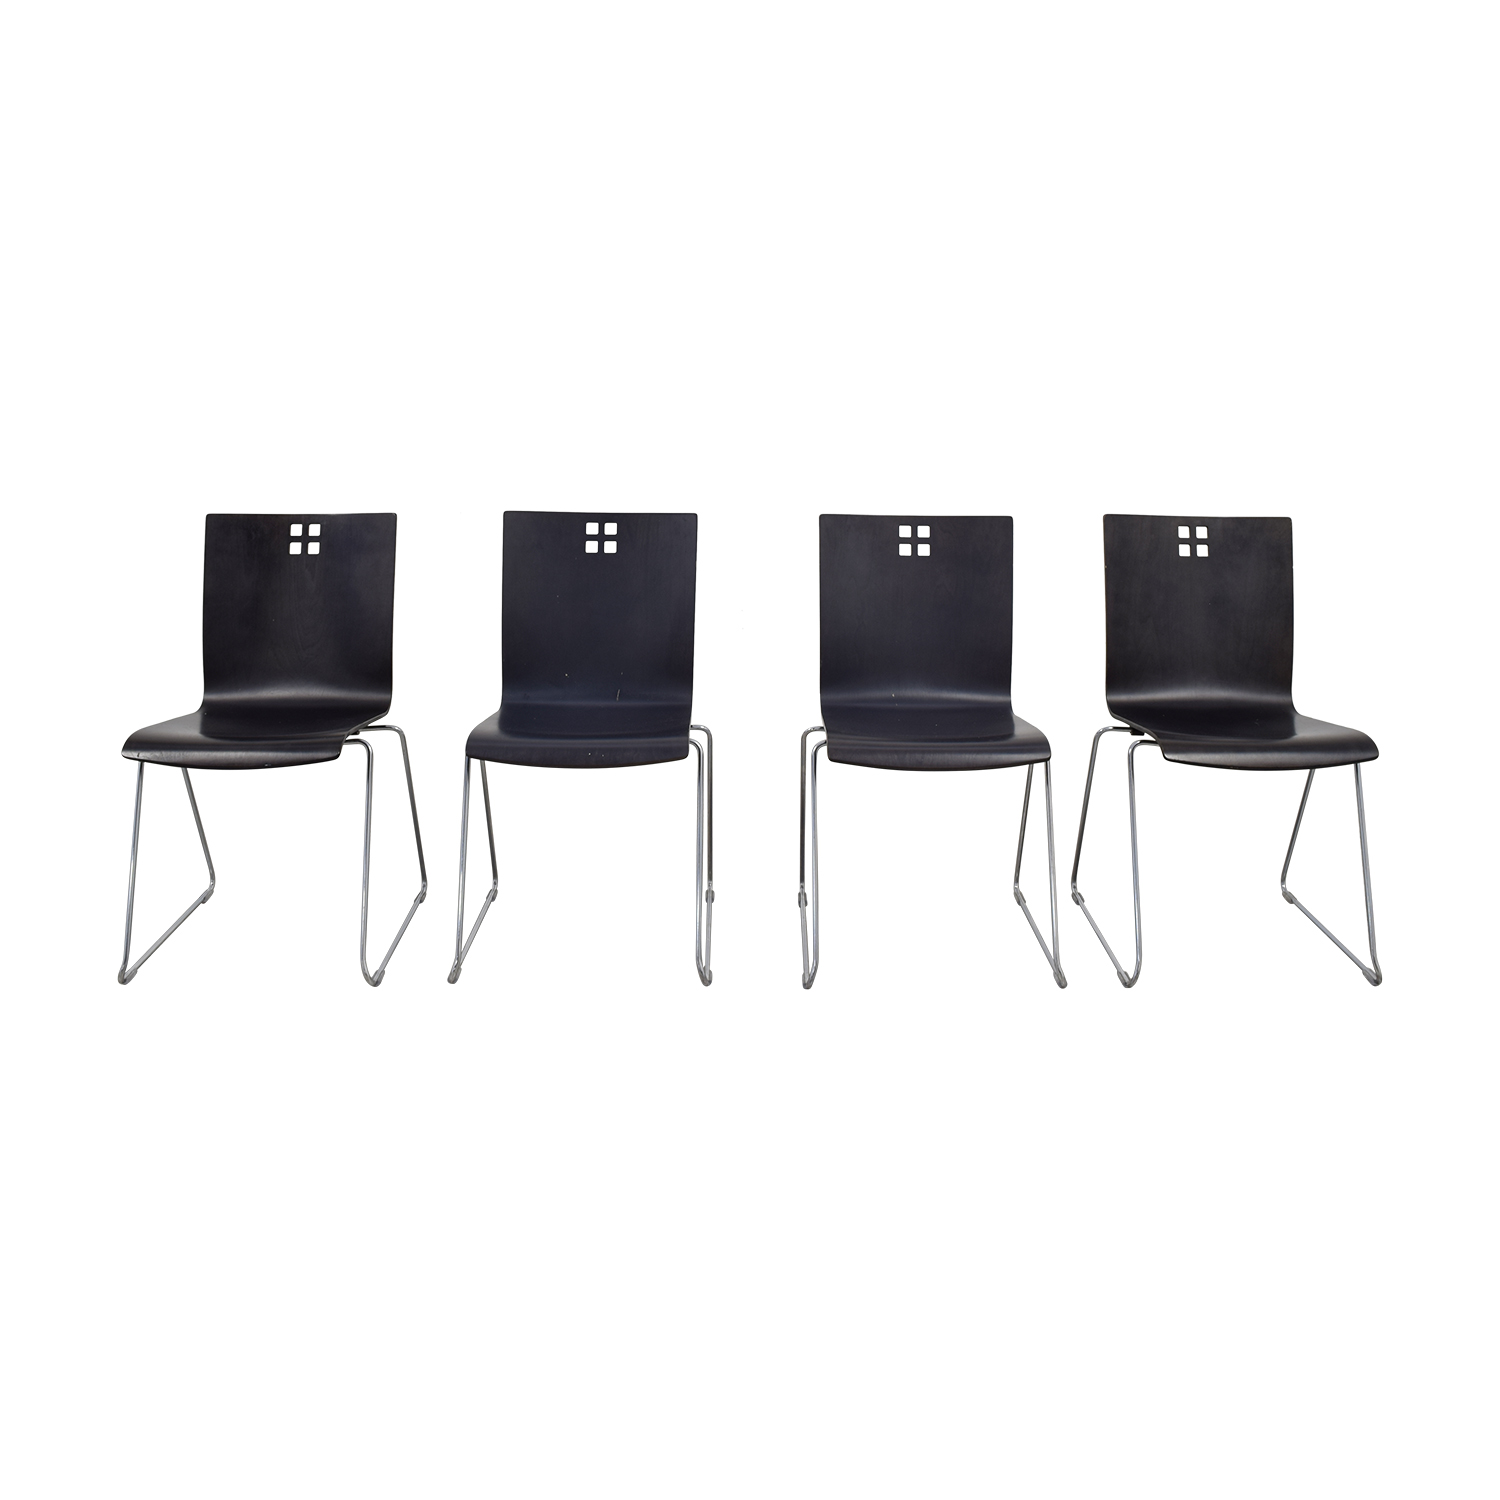 Leland International Leland International Marquette Dining Chairs - Set of 4 Black